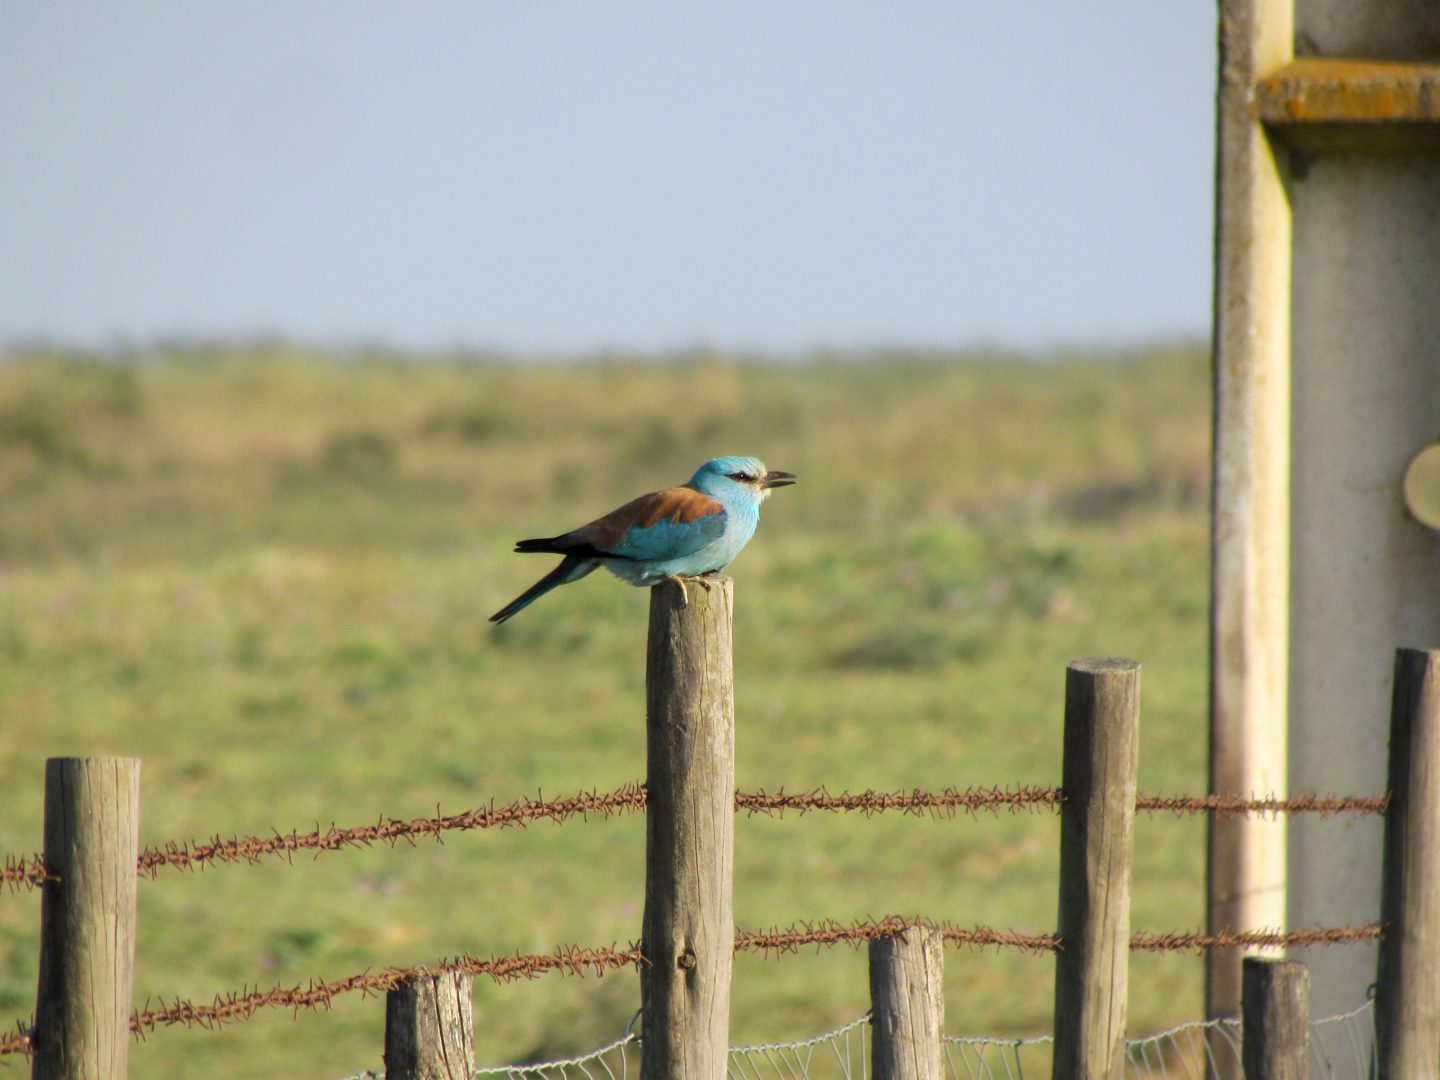 Roller perched on a post